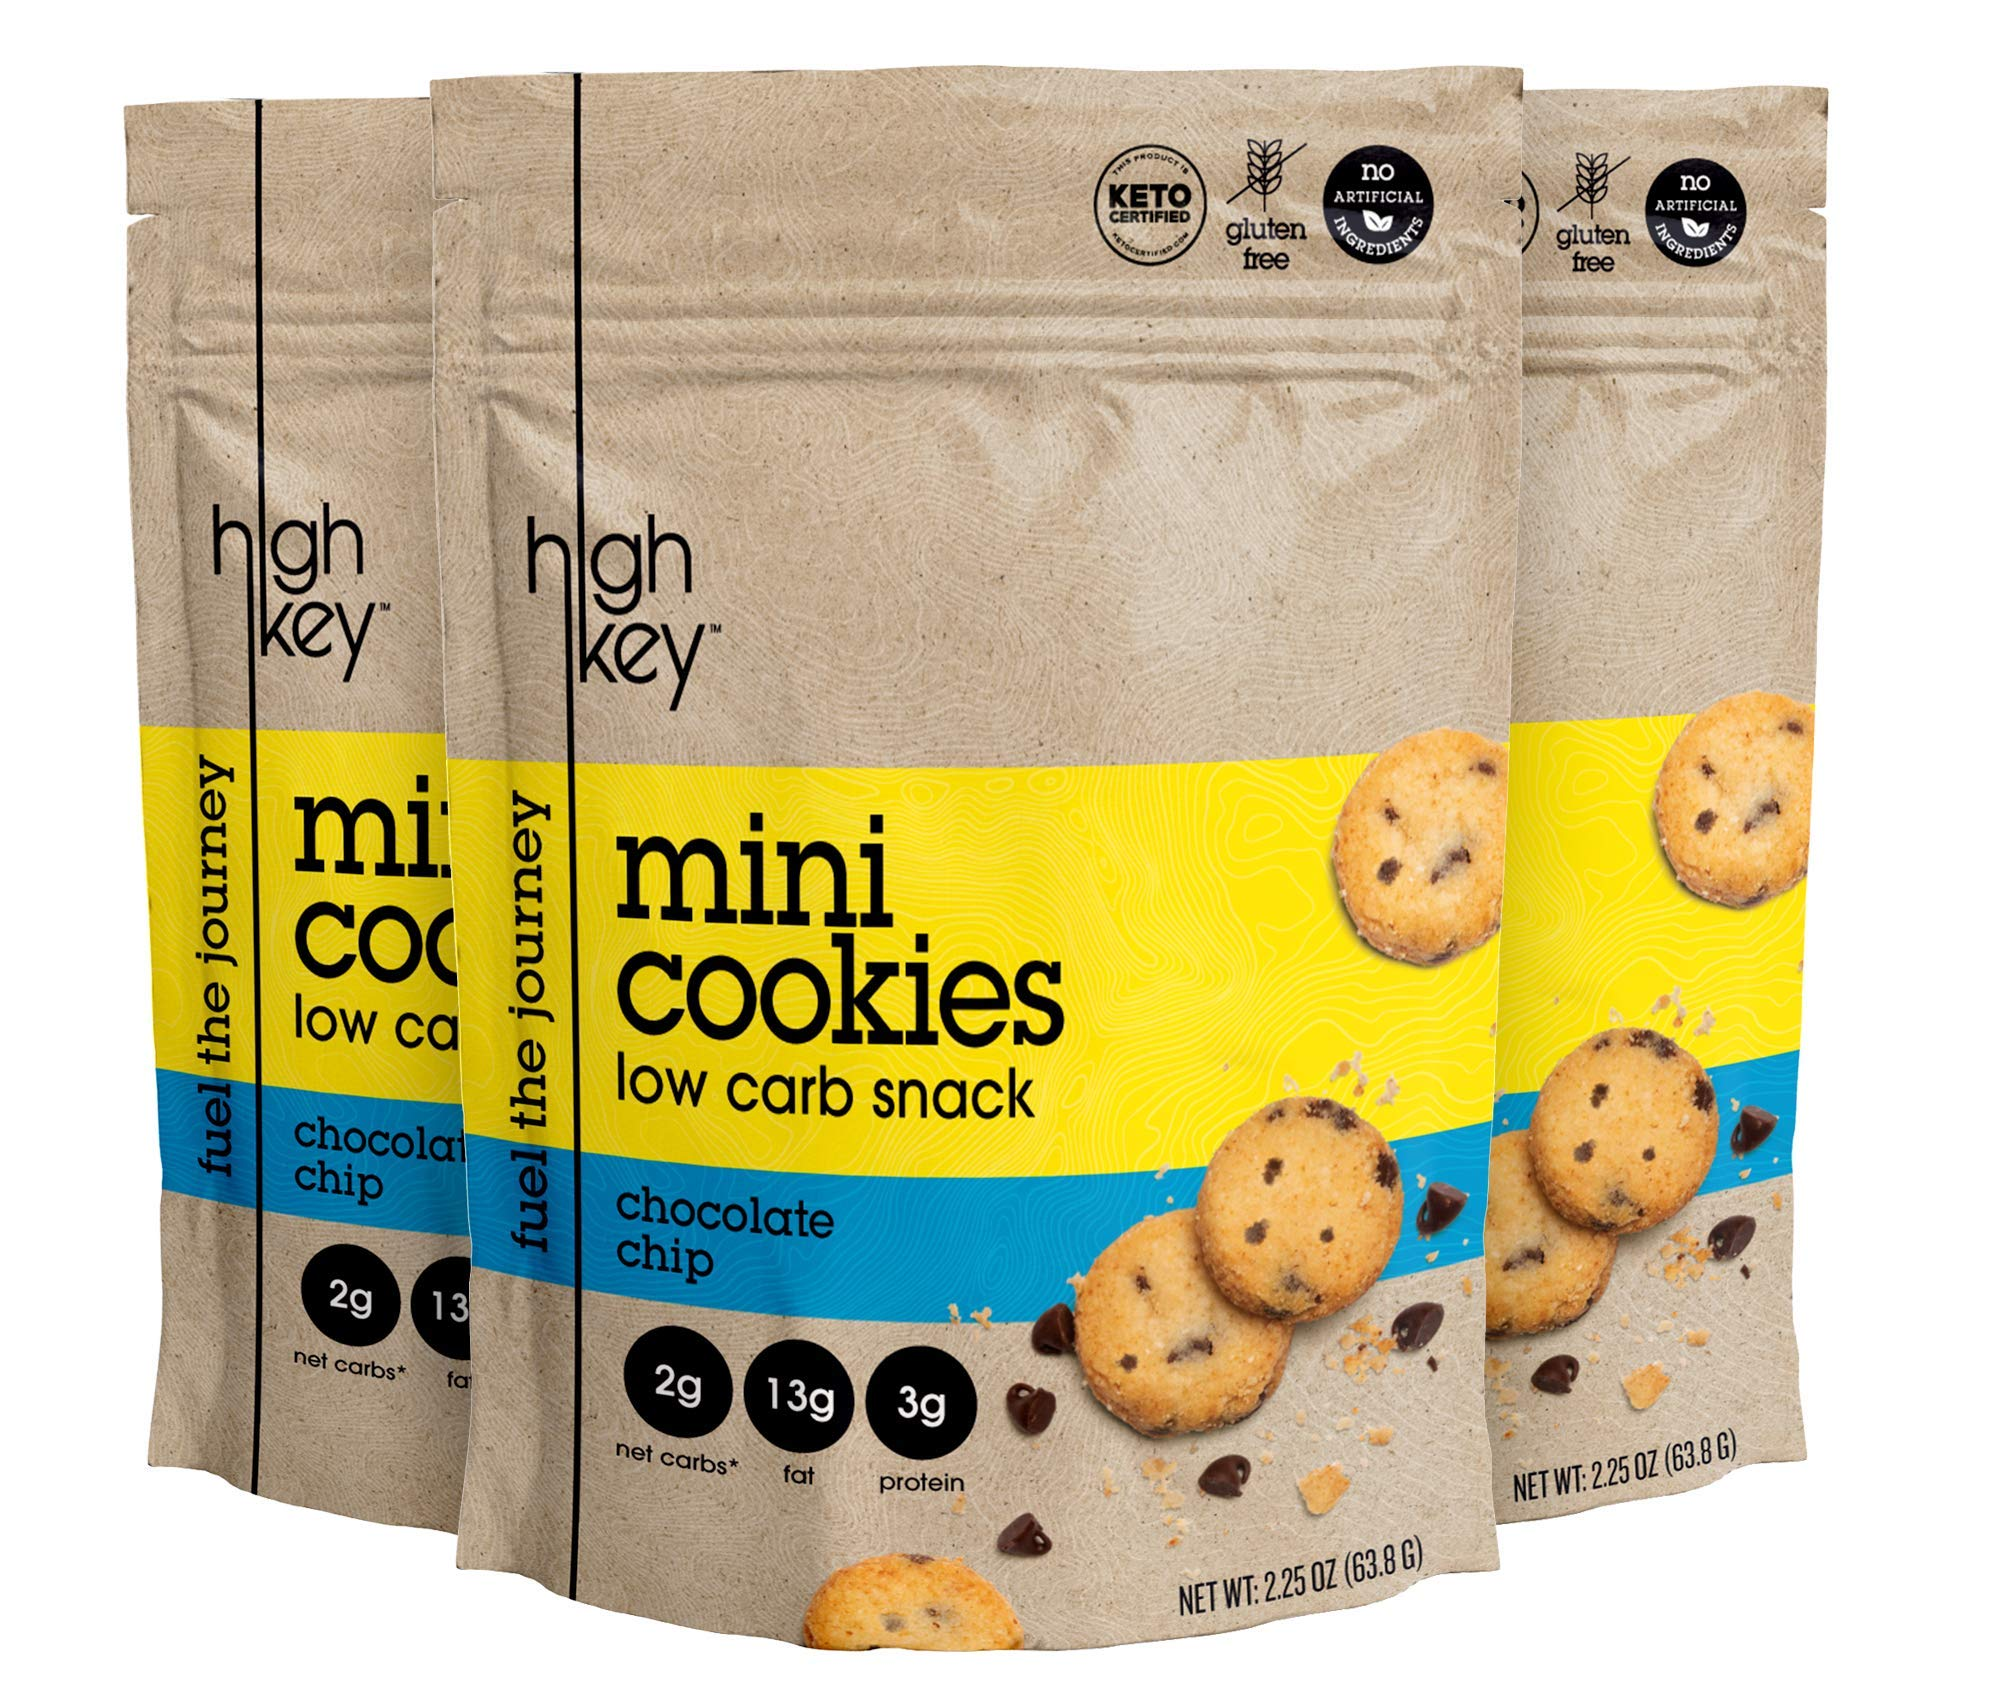 HighKey Snacks Keto Mini Cookies - Chocolate Chip, Pack of 3, 2.25oz Bags - Keto Friendly, Gluten Free, Low Carb, Healthy Snack - Sweet, Diet Friendly Dessert - Ketogenic Food with Natural Ingredients by HIGHKEY SNACKS